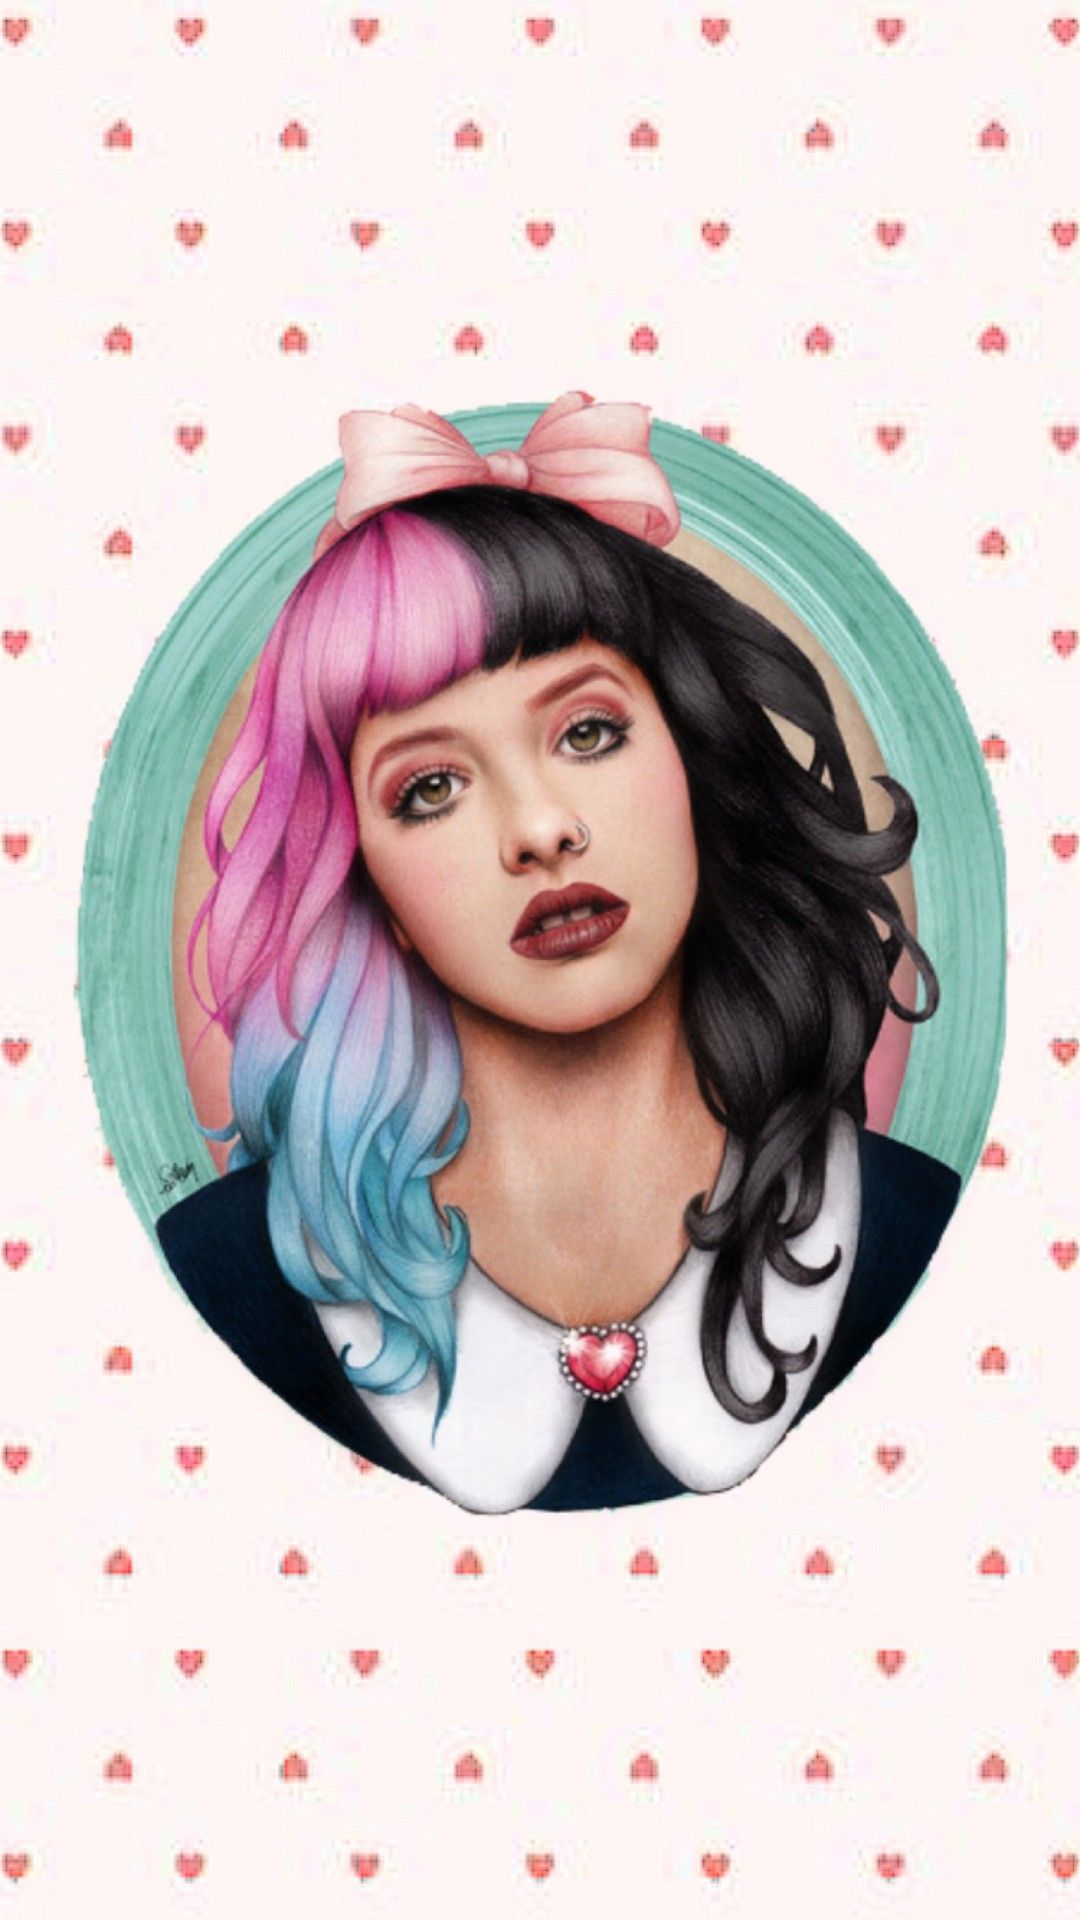 melanie martinez wallpaper 183 free awesome hd